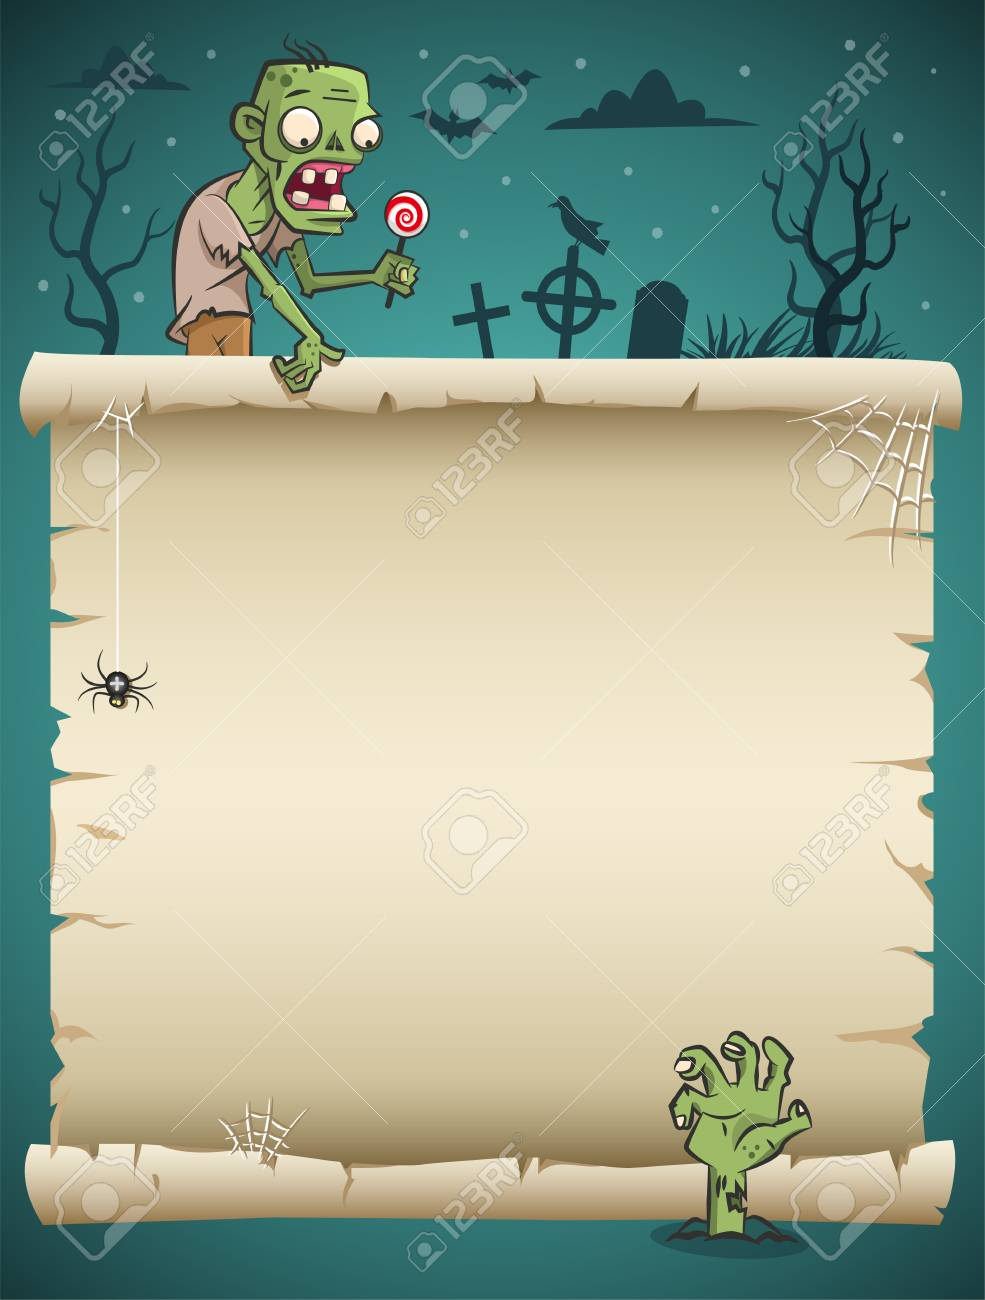 Halloween blank paper scroll with zombie and nighty background - 110834827